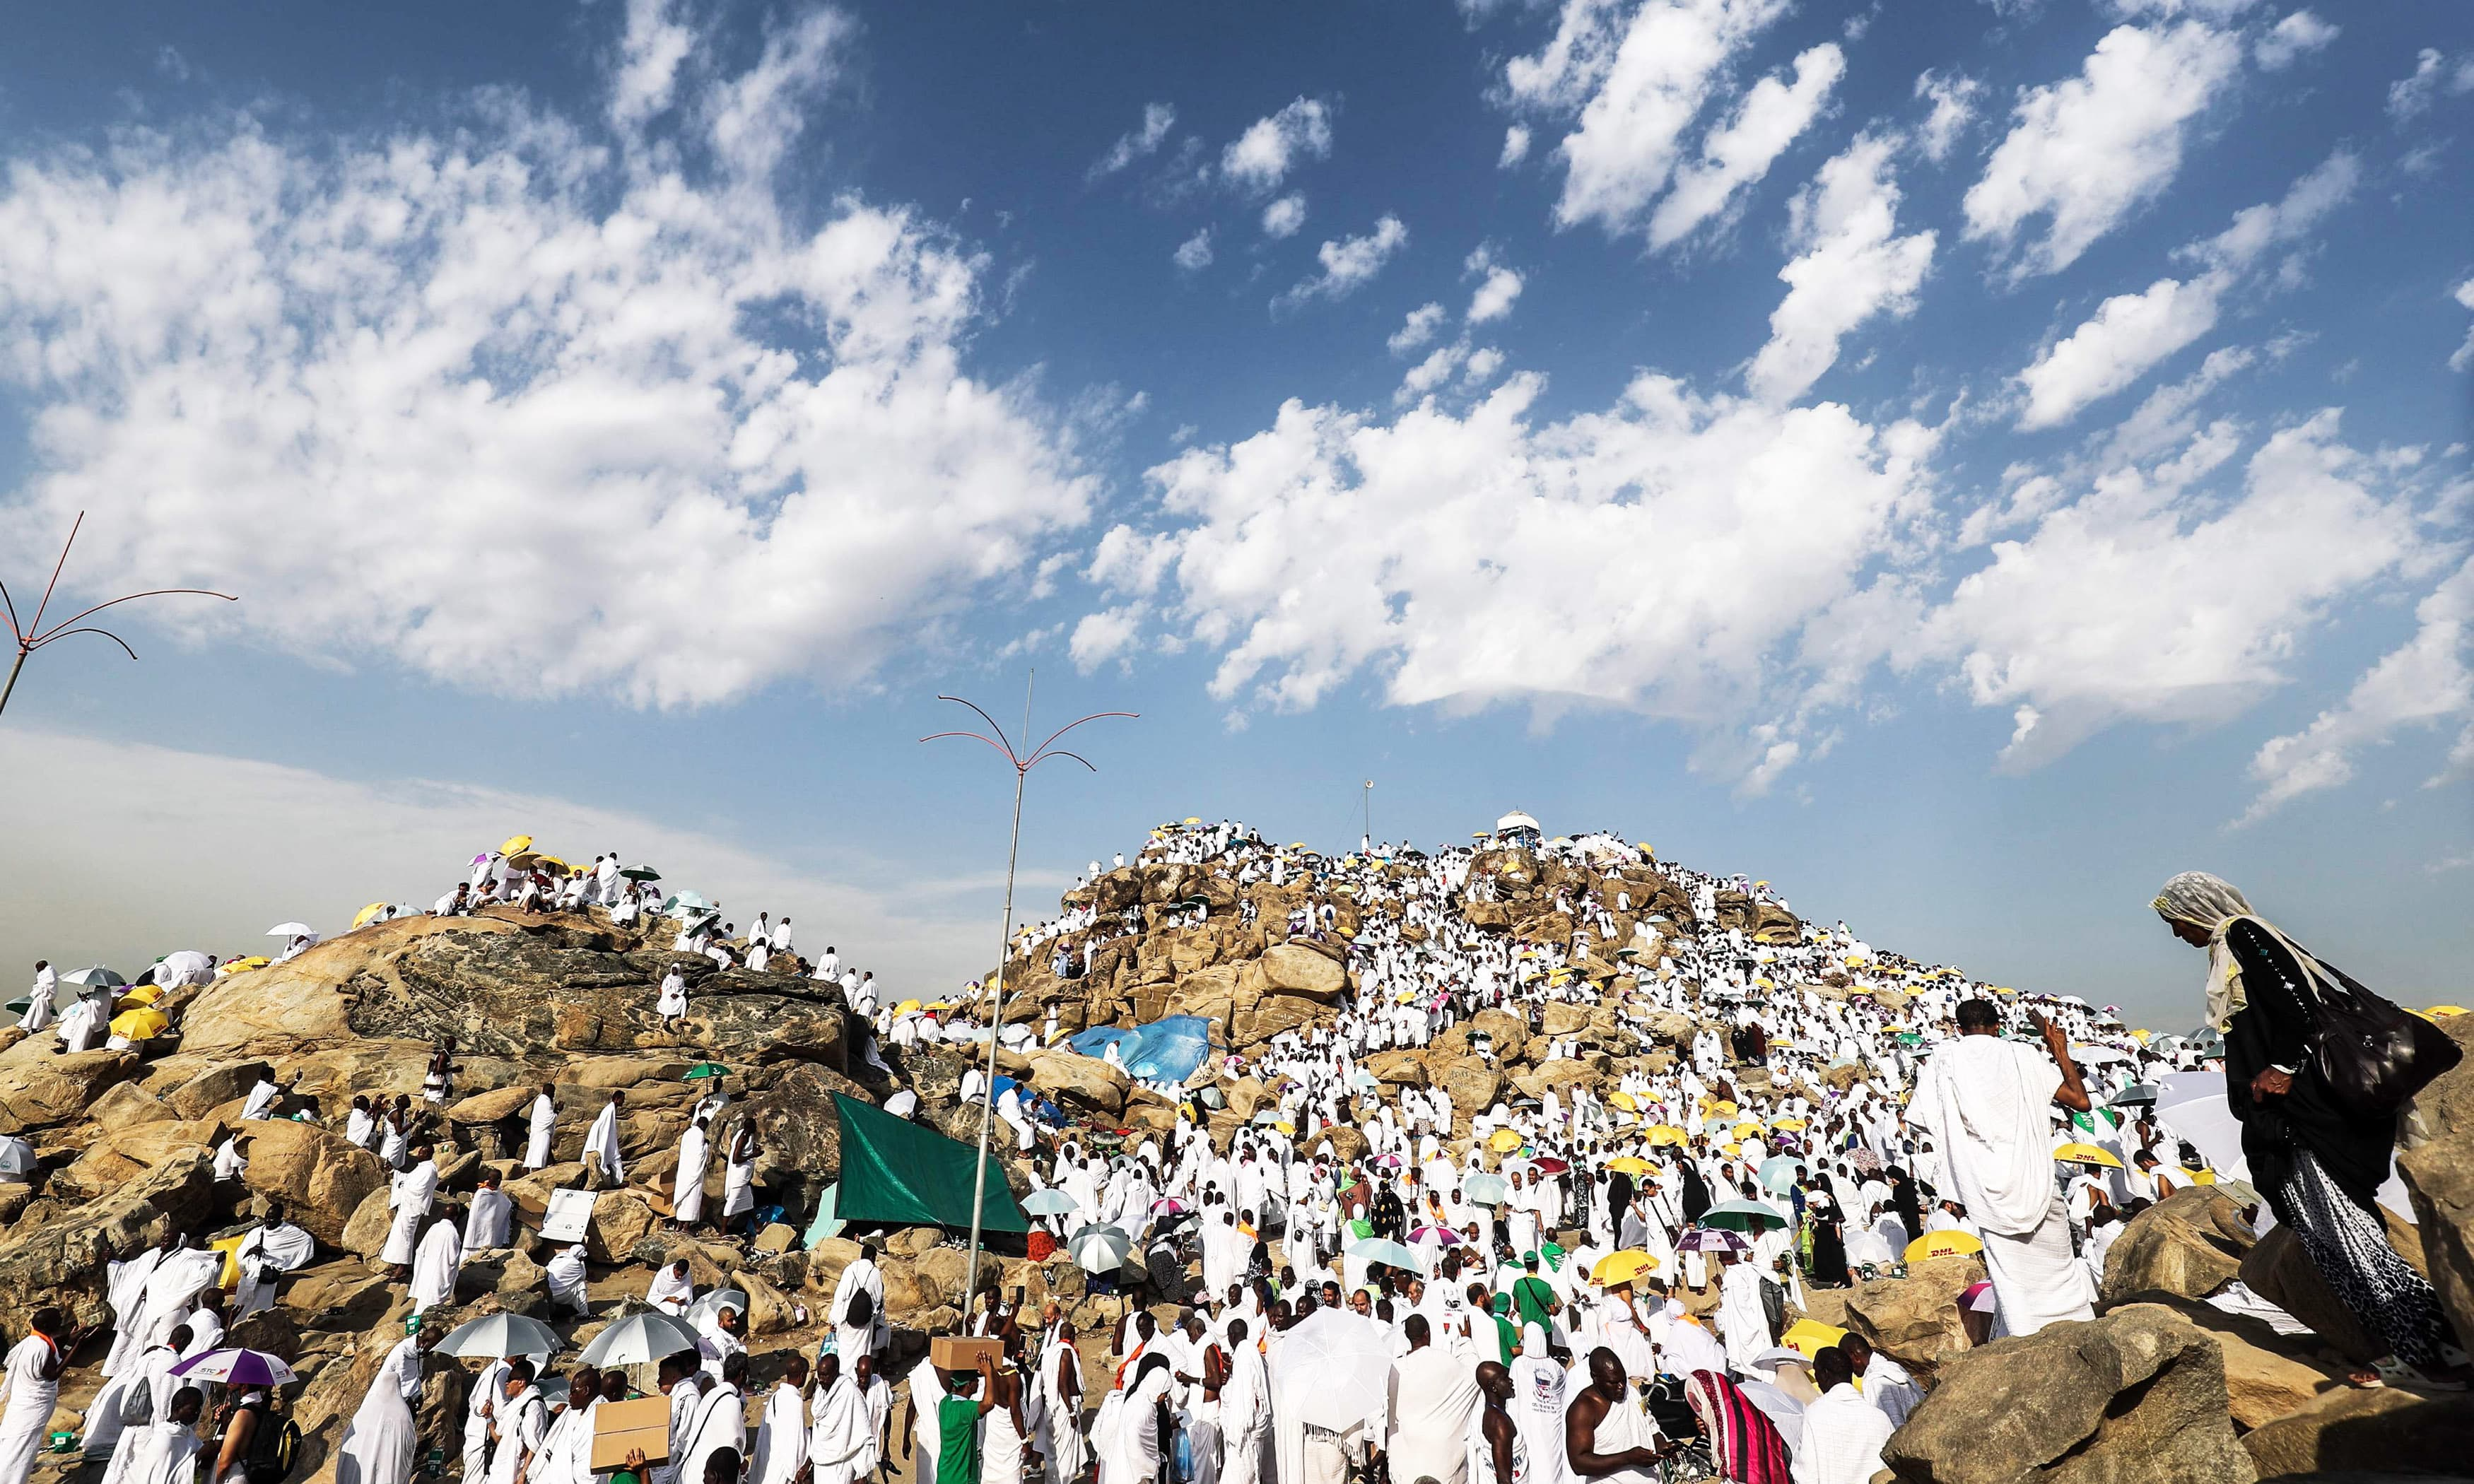 Pilgrims gather on Mount Arafat, also known as Jabal al-Rahma (Mount of Mercy), southeast of the holy city of Makkah. —AFP